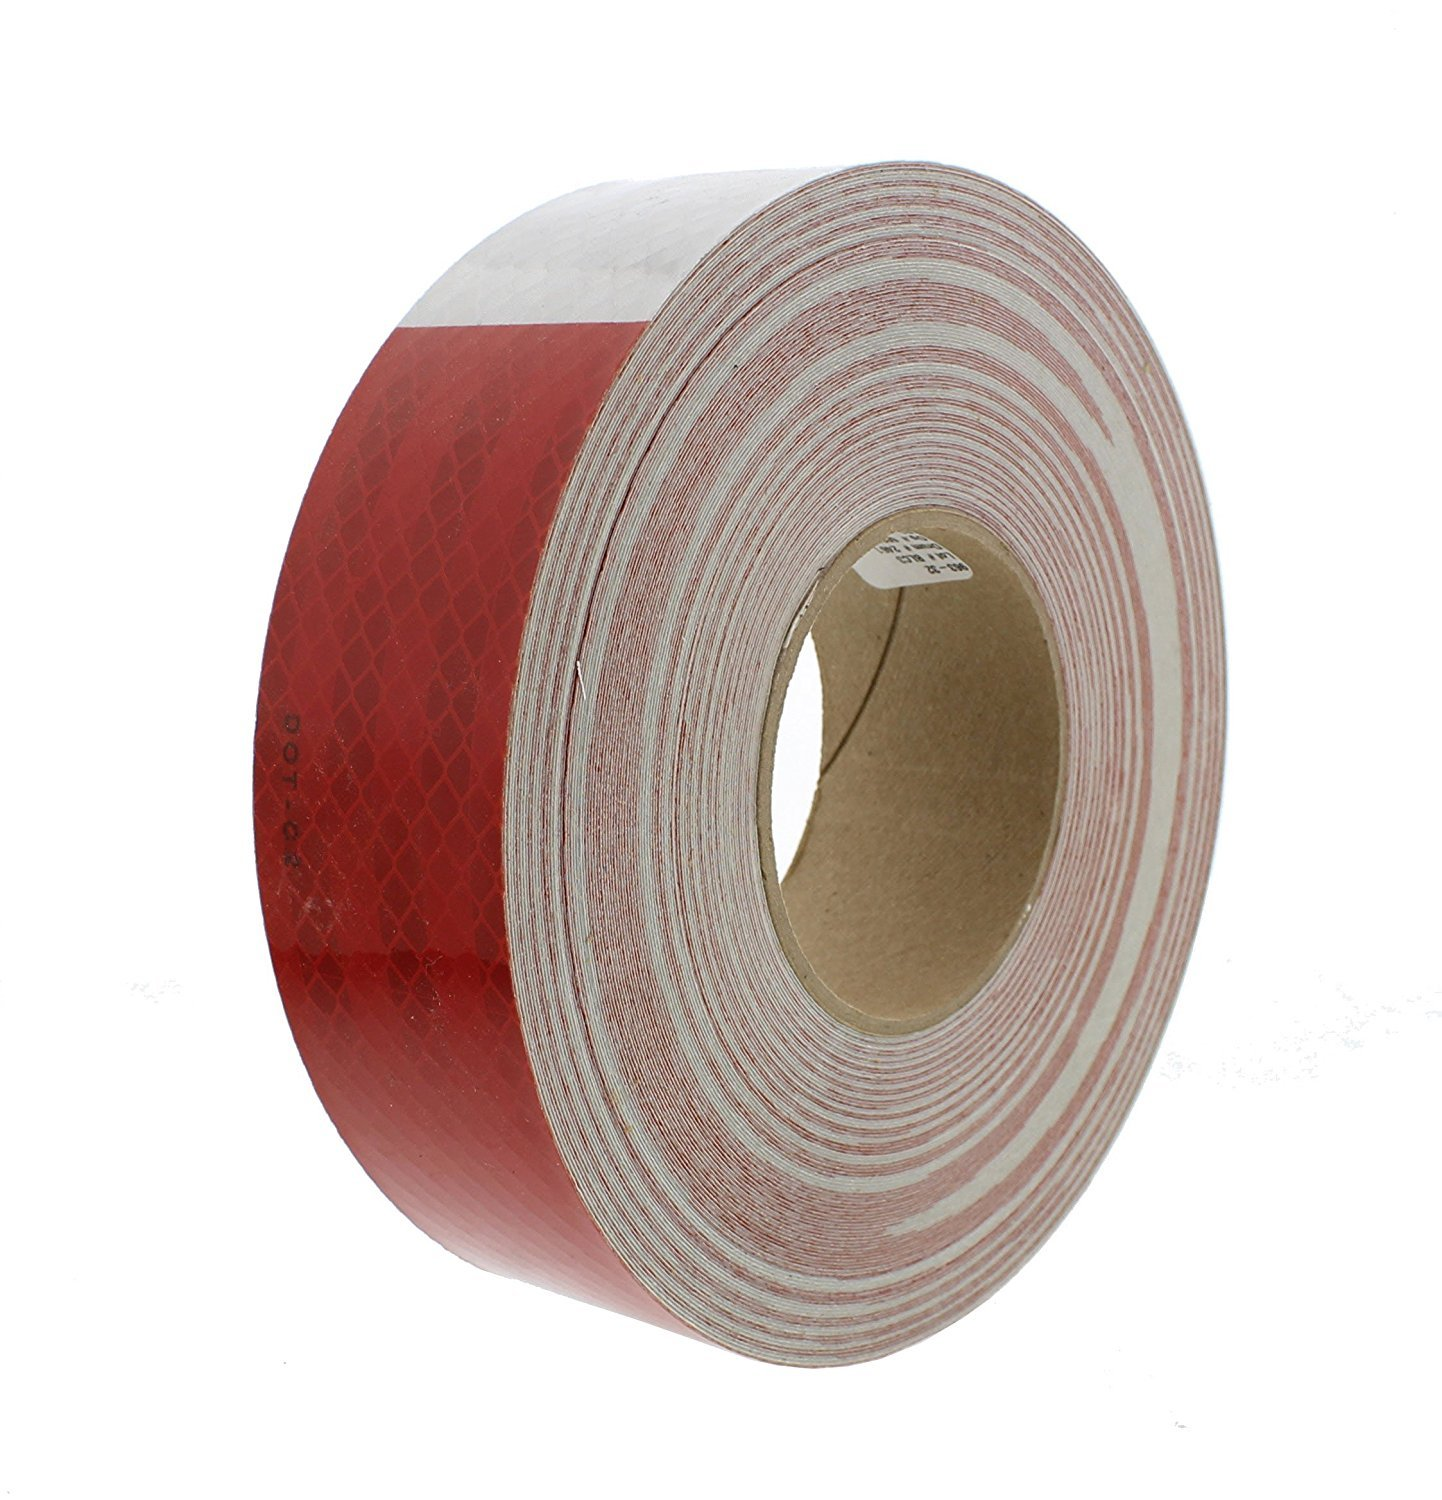 "3M 22494 Red and White Reflective Tape - 2"" x 150'"